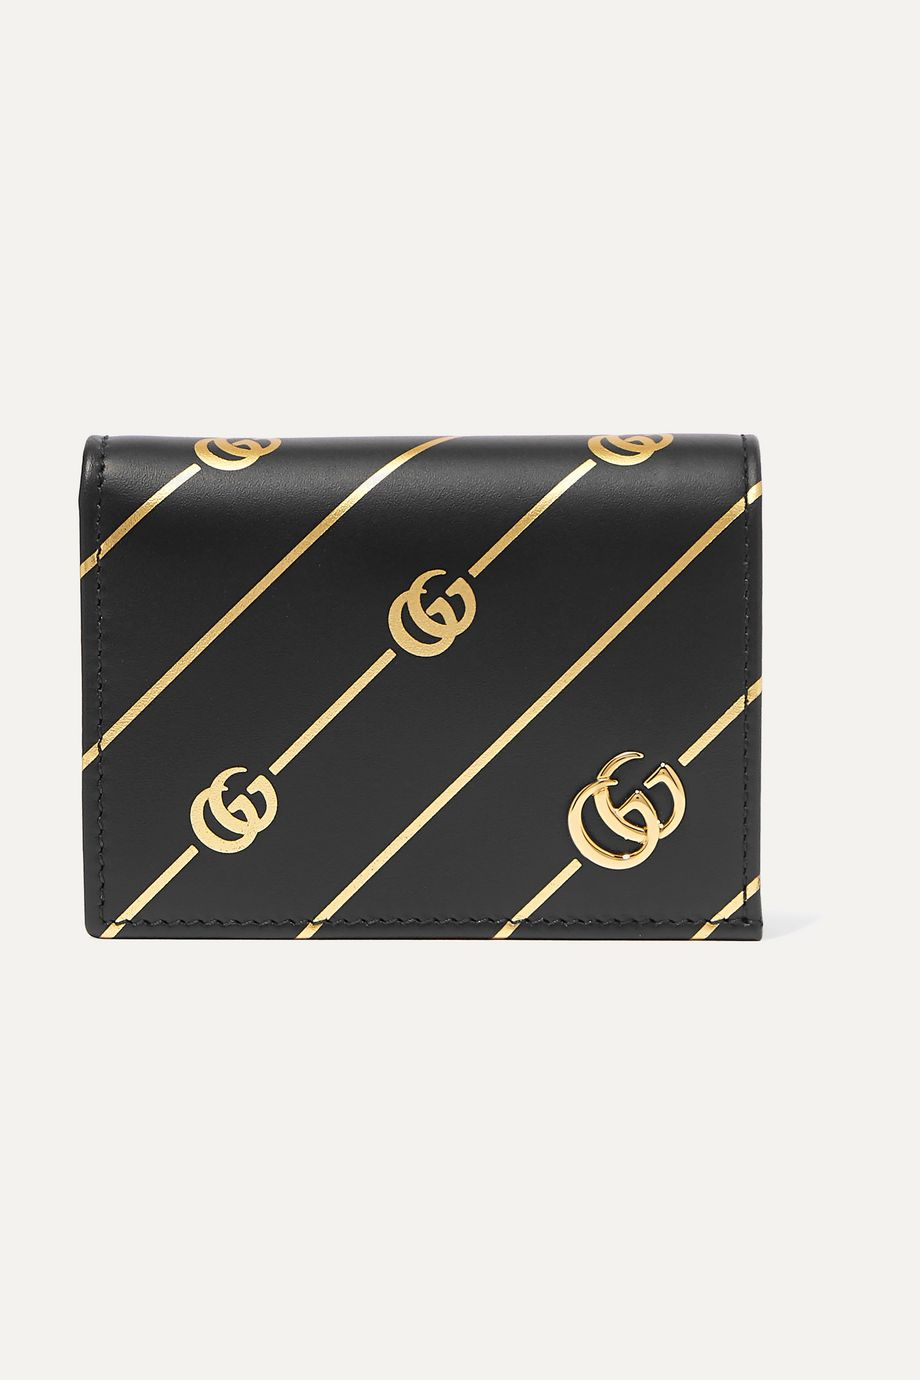 Gucci Printed leather cardholder